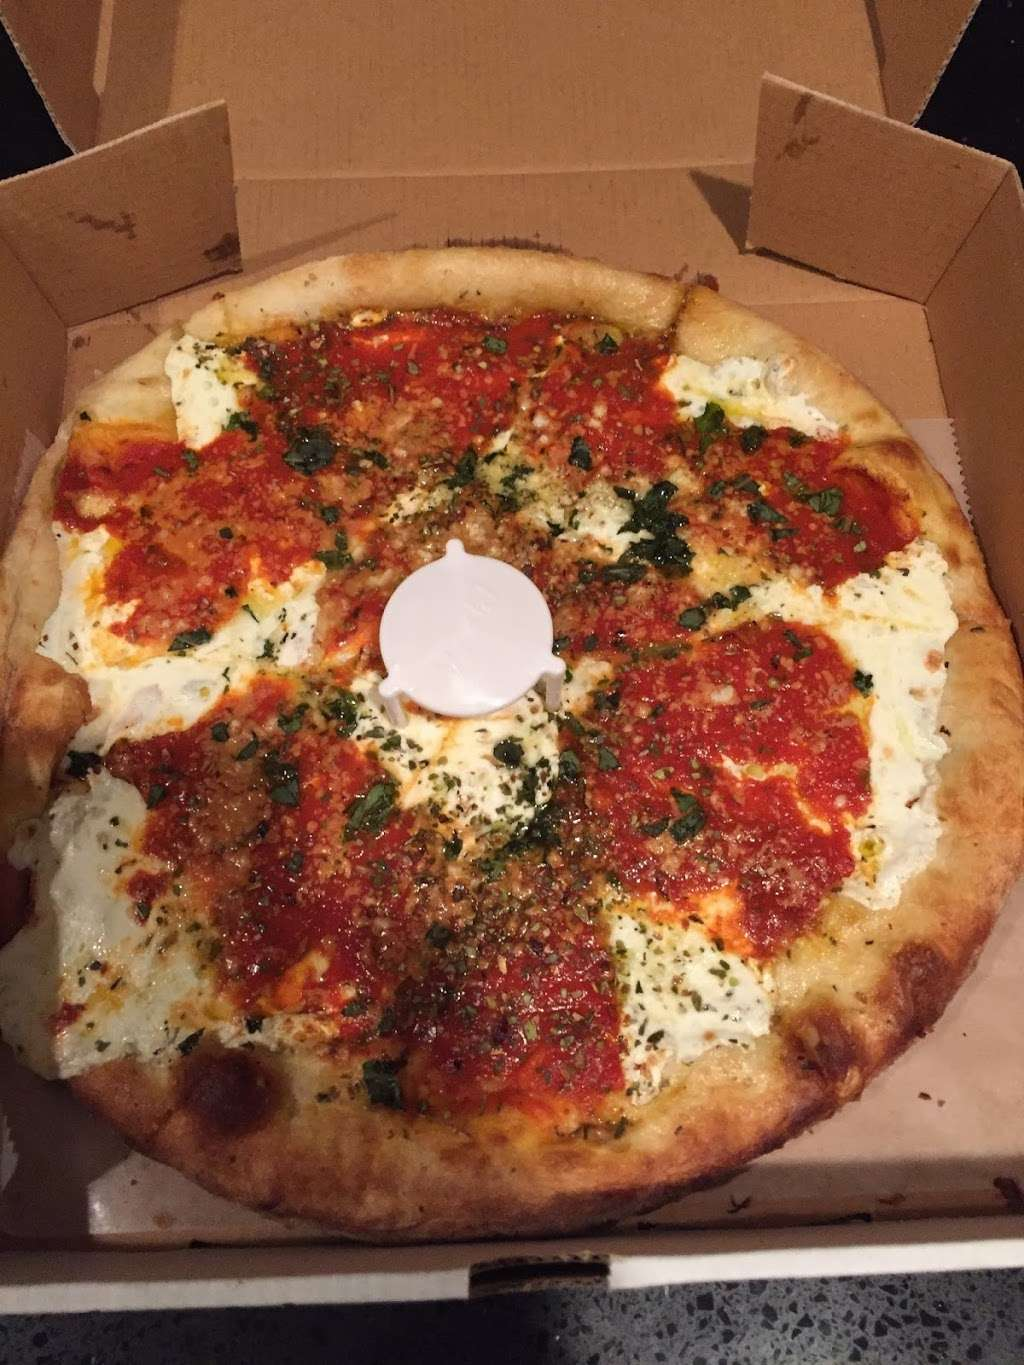 Master Pizza Carlstadt N.J. - meal delivery  | Photo 3 of 10 | Address: 401 Hackensack St, Carlstadt, NJ 07072, USA | Phone: (201) 903-0050